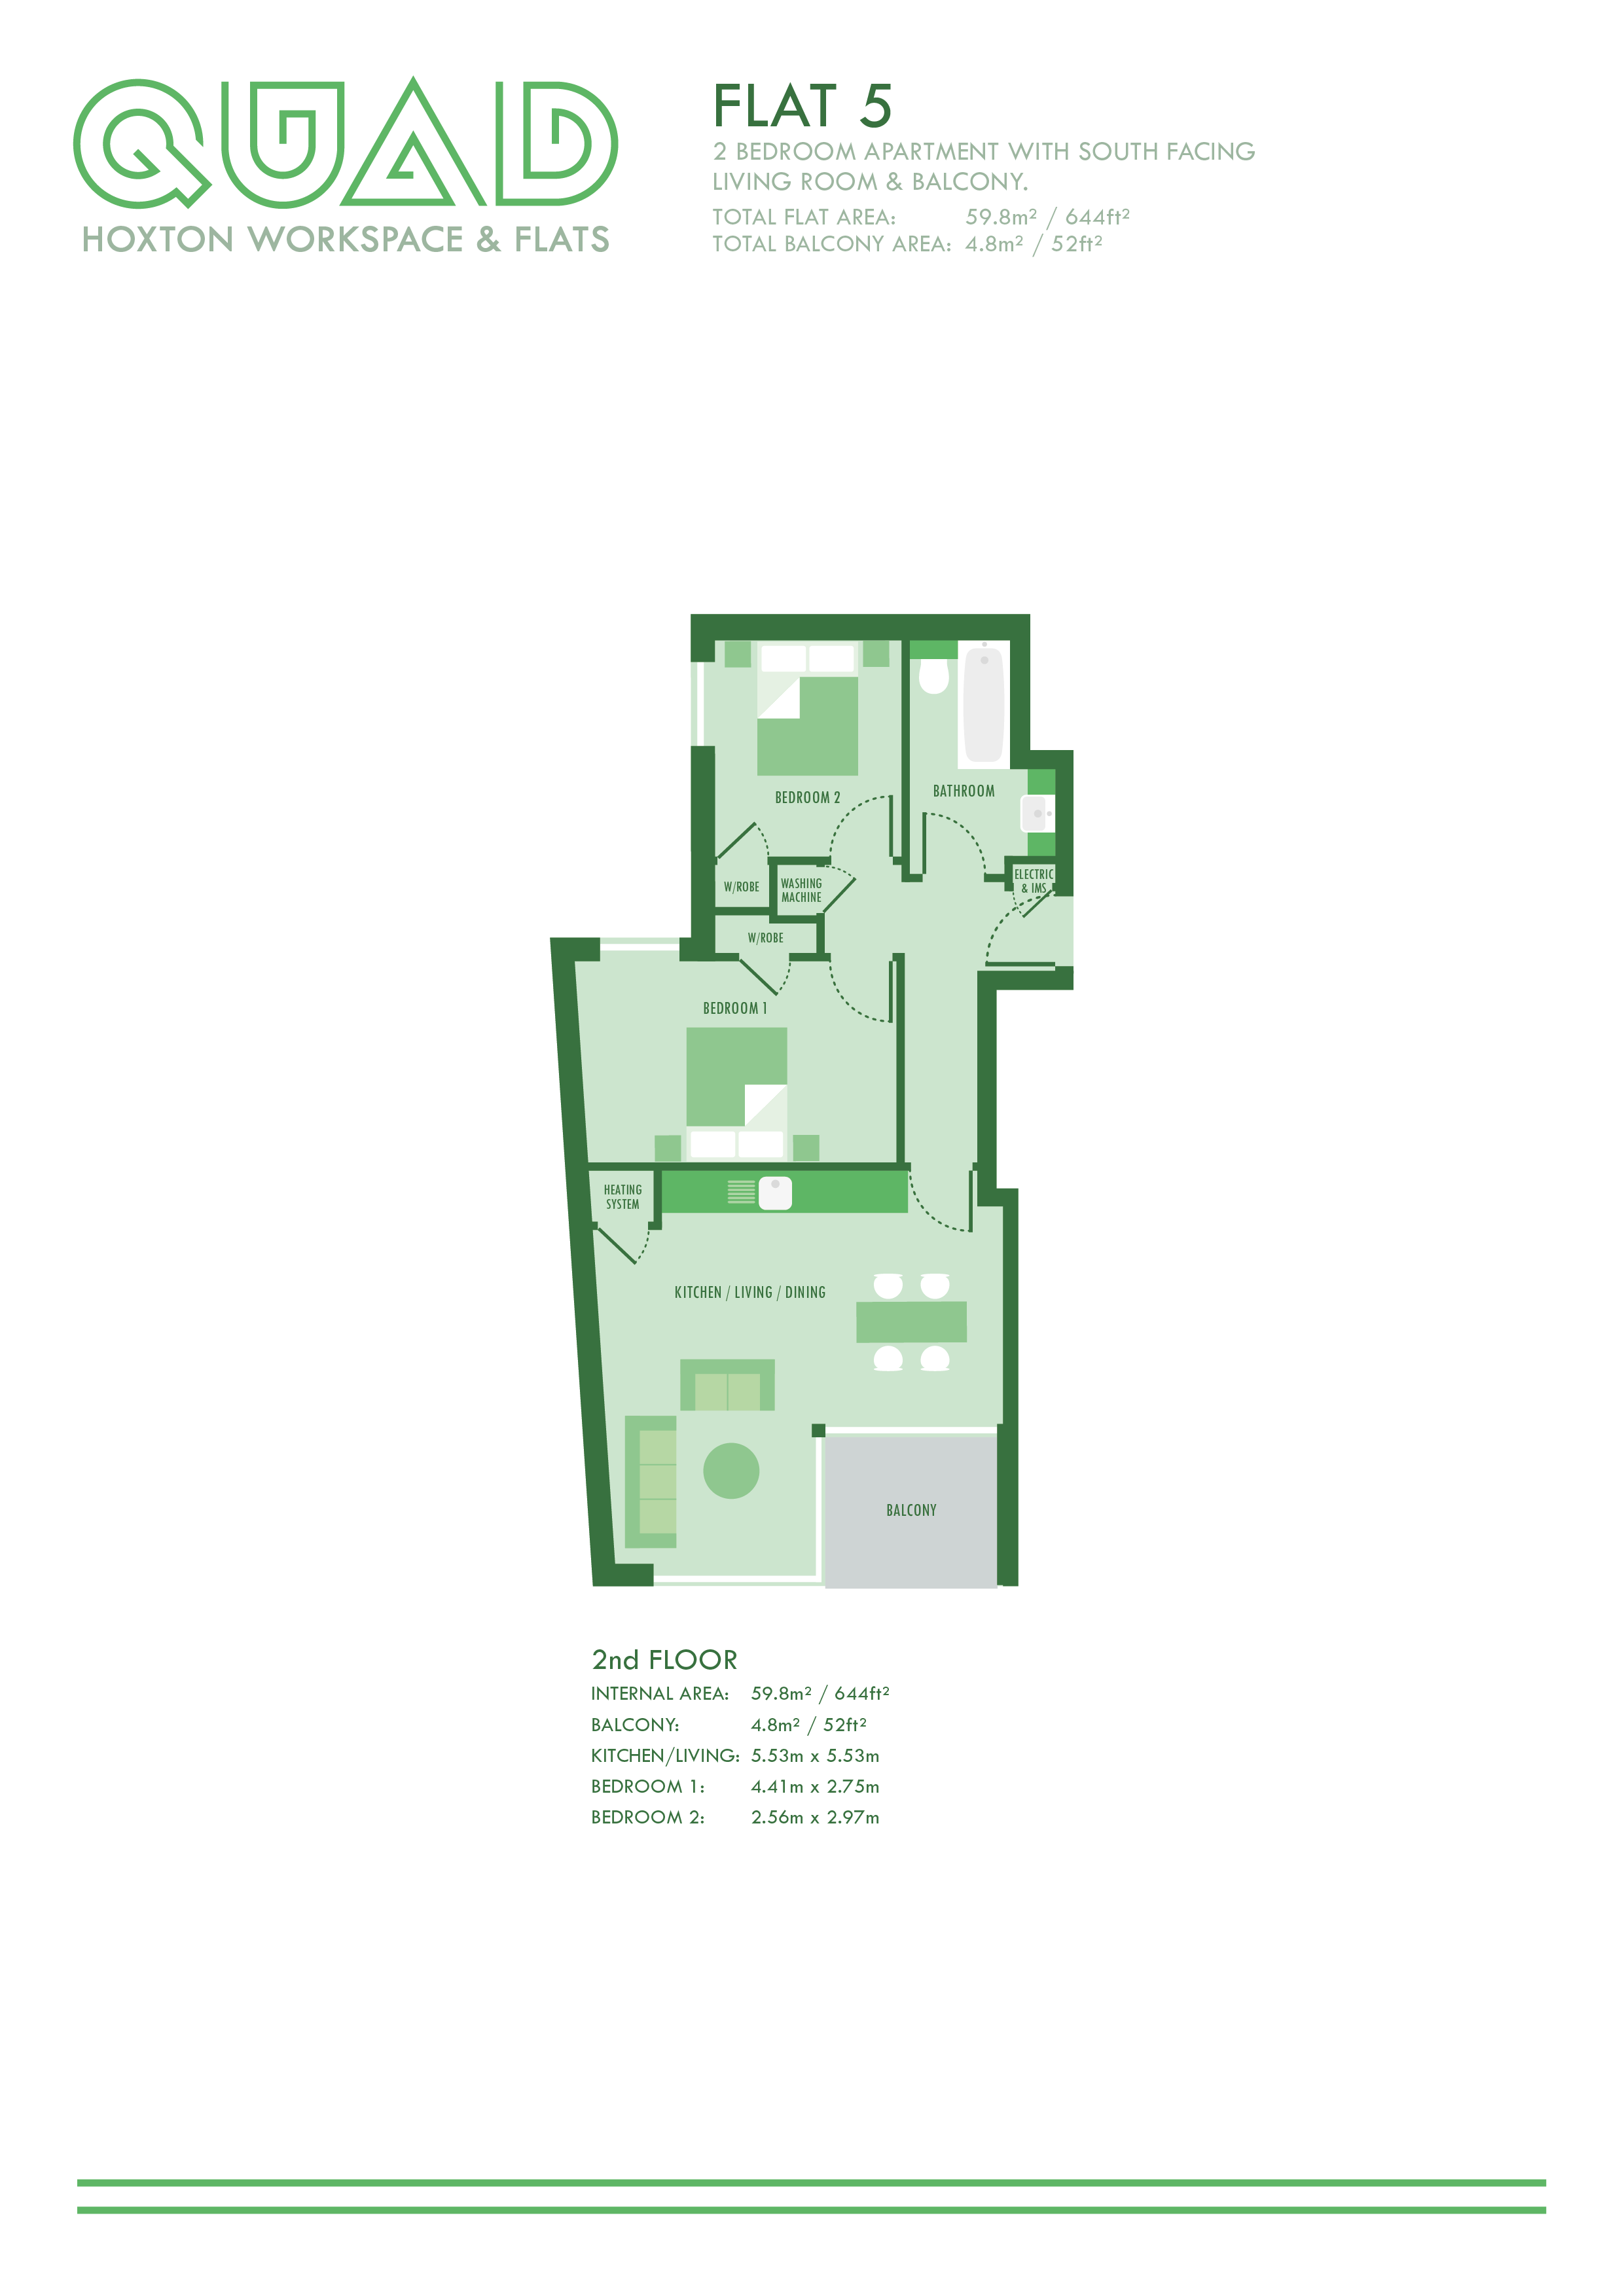 DCP Hoxton Floorplans5-11.png